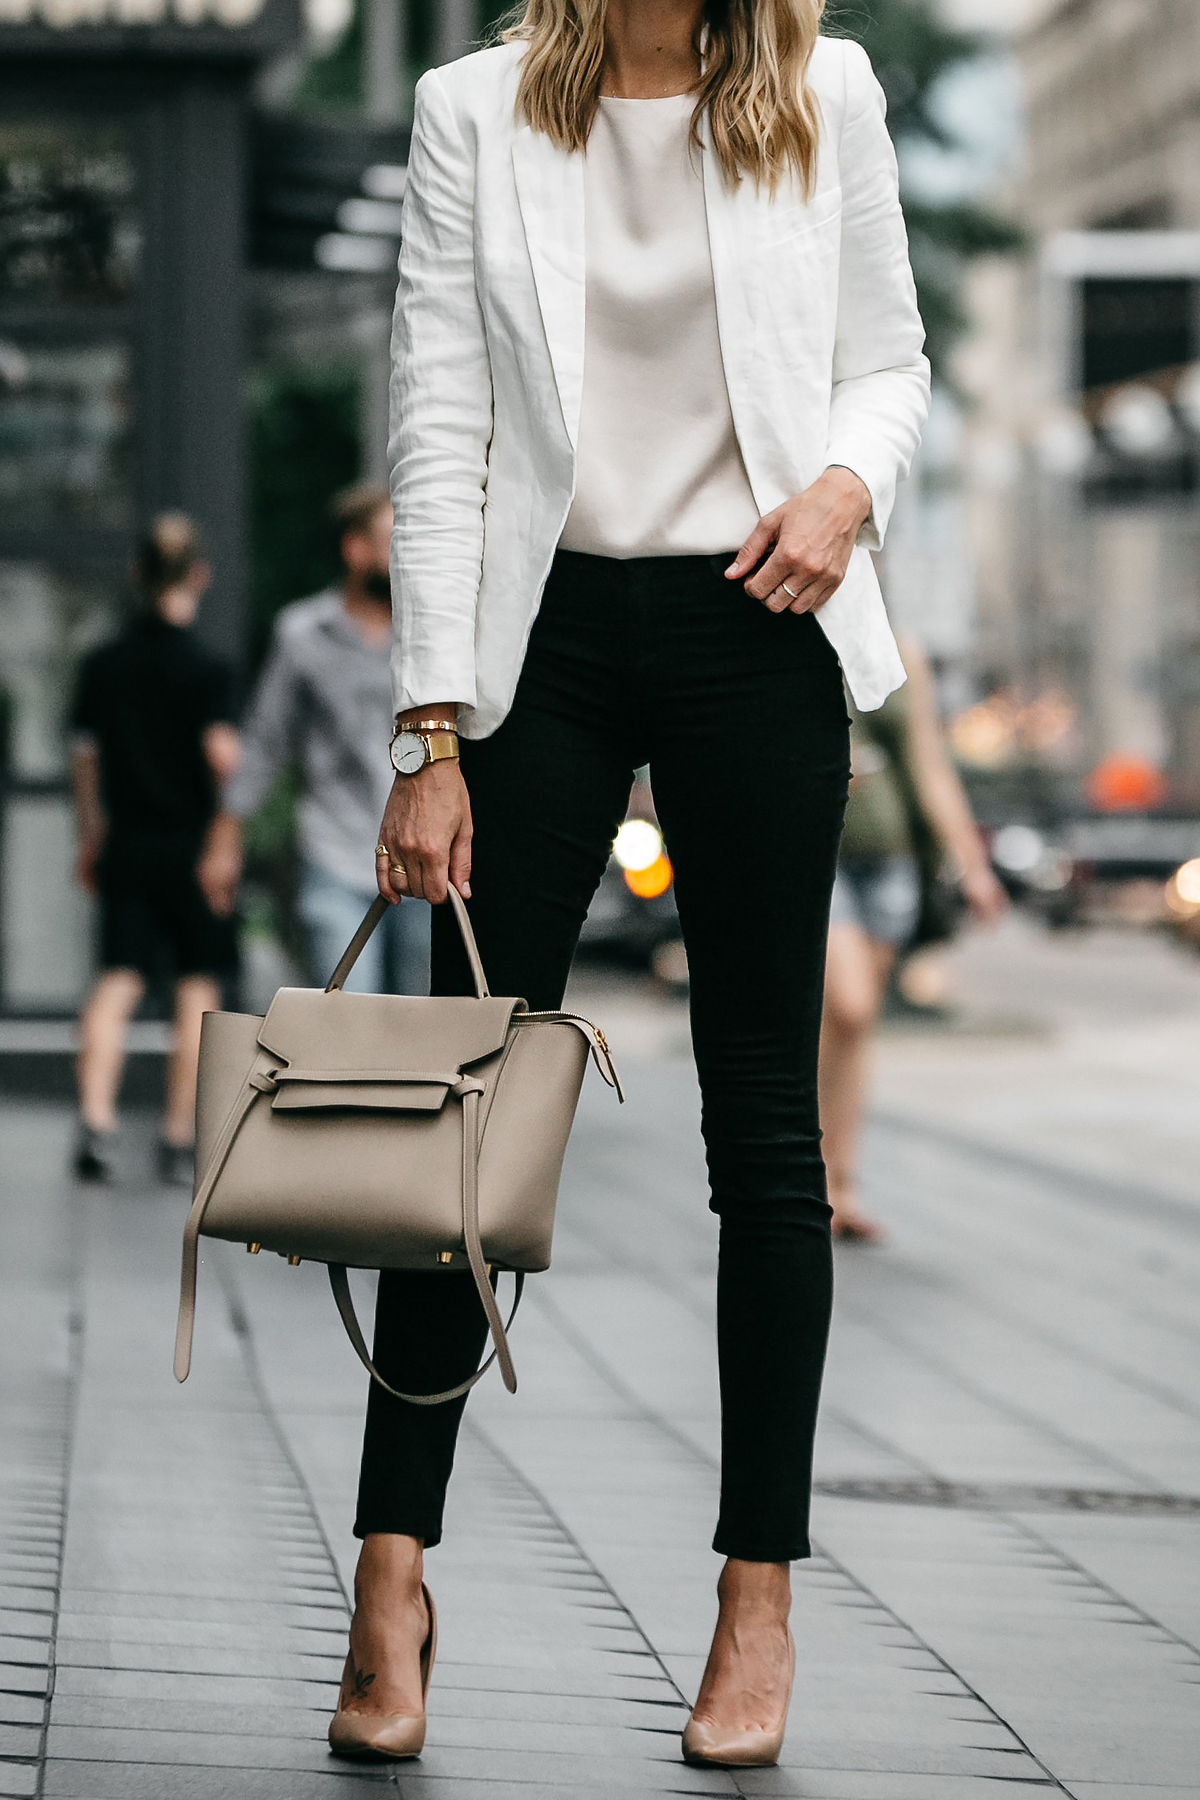 Stitch Fix Outfit Joie White Blazer J Brand Black Skinny Jeans Nude Pumps Celine Belt Handbag Fashion Jackson Dallas Blogger Fashion Blogger Street Style